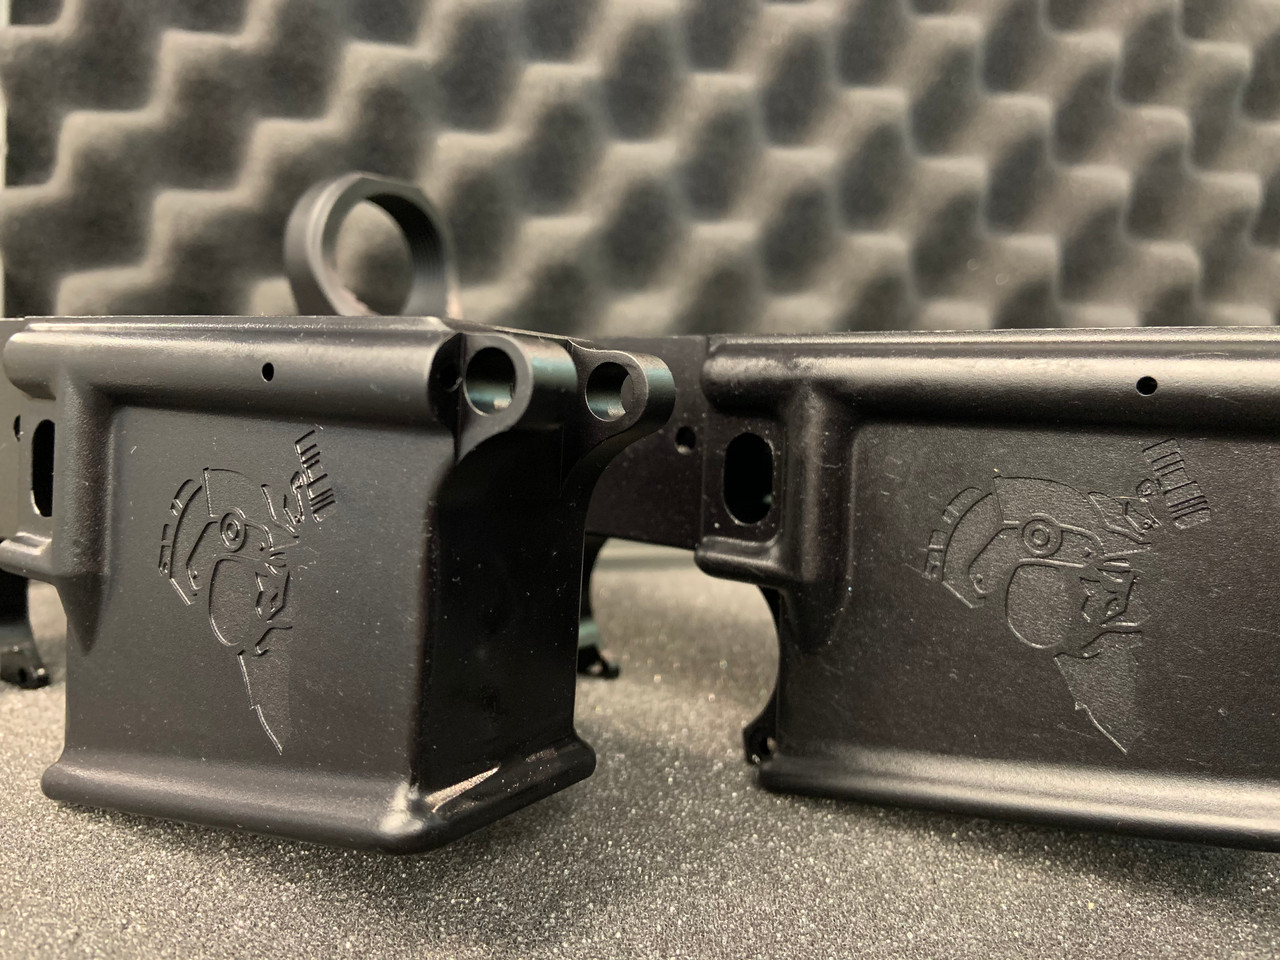 LIMITED EDITION OPERATOR LOWER (OPL)